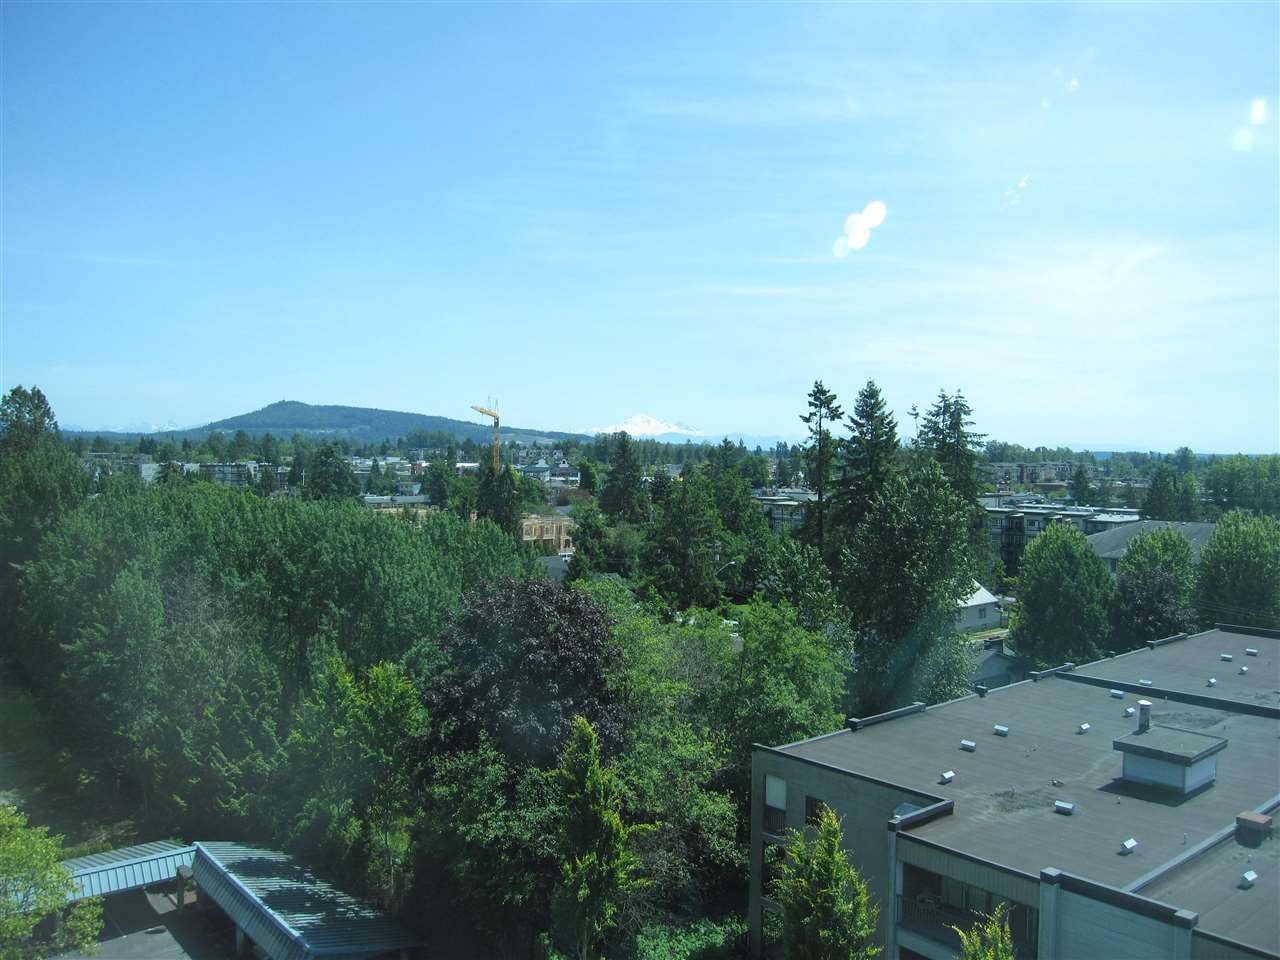 This 2 bedroom + Den suite in Panorama has amazing SOUTH FACING 180 DEGREE VIEW. Modern open concept living rm, kitchen, dining area with gas fireplace in living rm. This Maple Ridge's sought after adult oriented complex. The seniors centre offers fitness classes, hair salon, craft room, cafeteria, billiards room, prepared meals and various other daily activities. Such a great location with transit right outside the building and an easy walk to downtown Maple Ridge with its library, recreation, restaurants and shops.